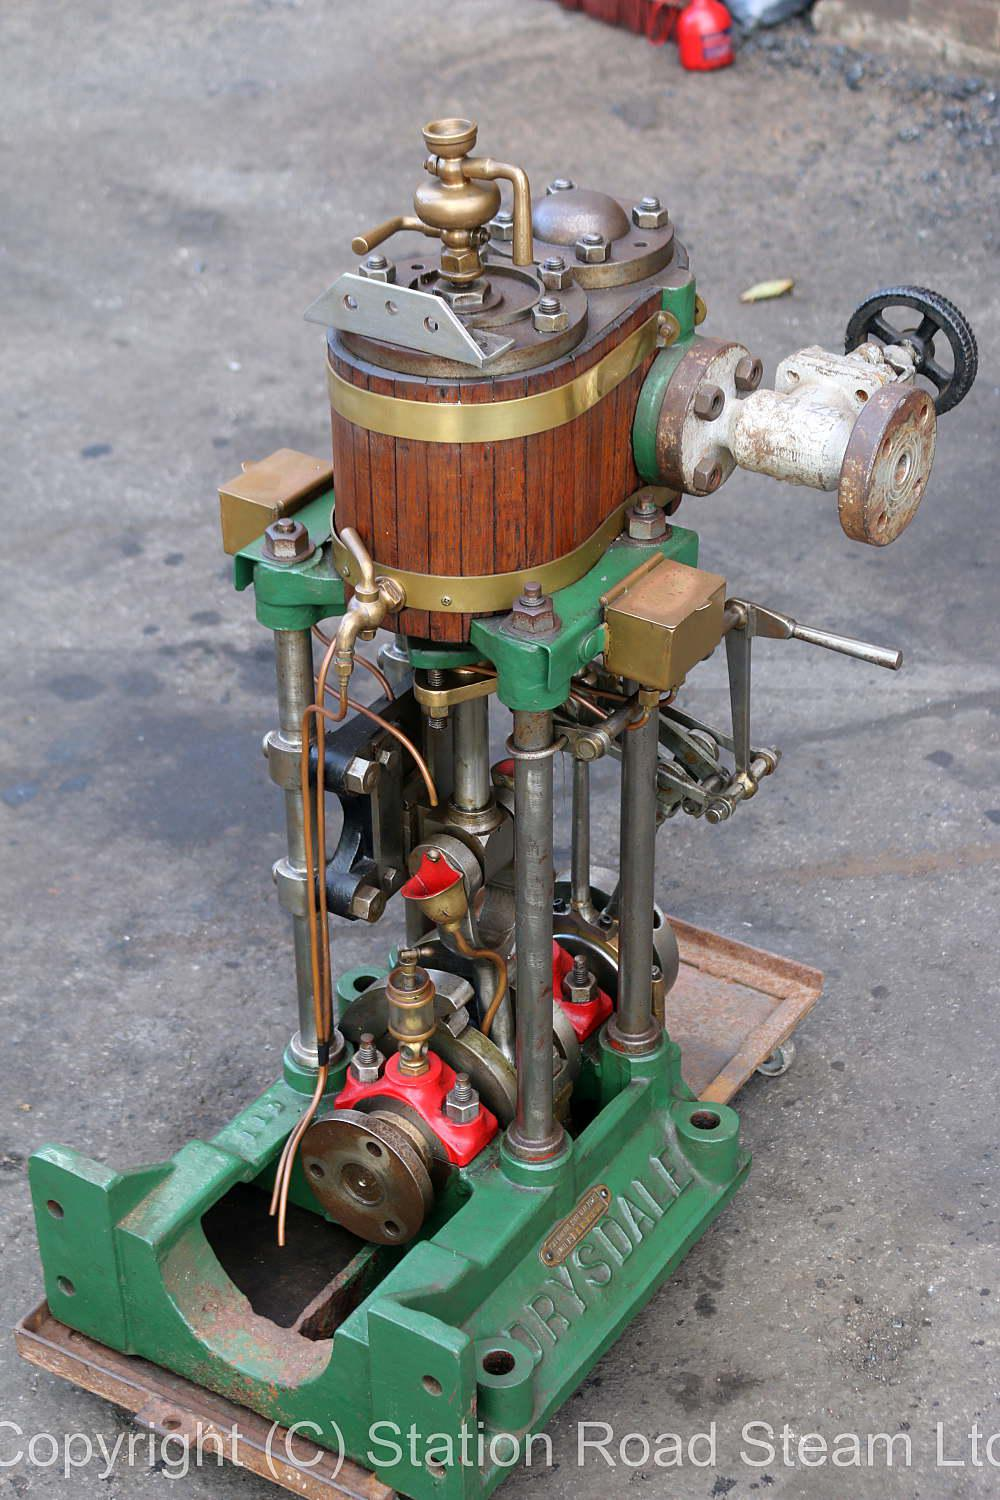 Drysdale vertical engine with reversing gear